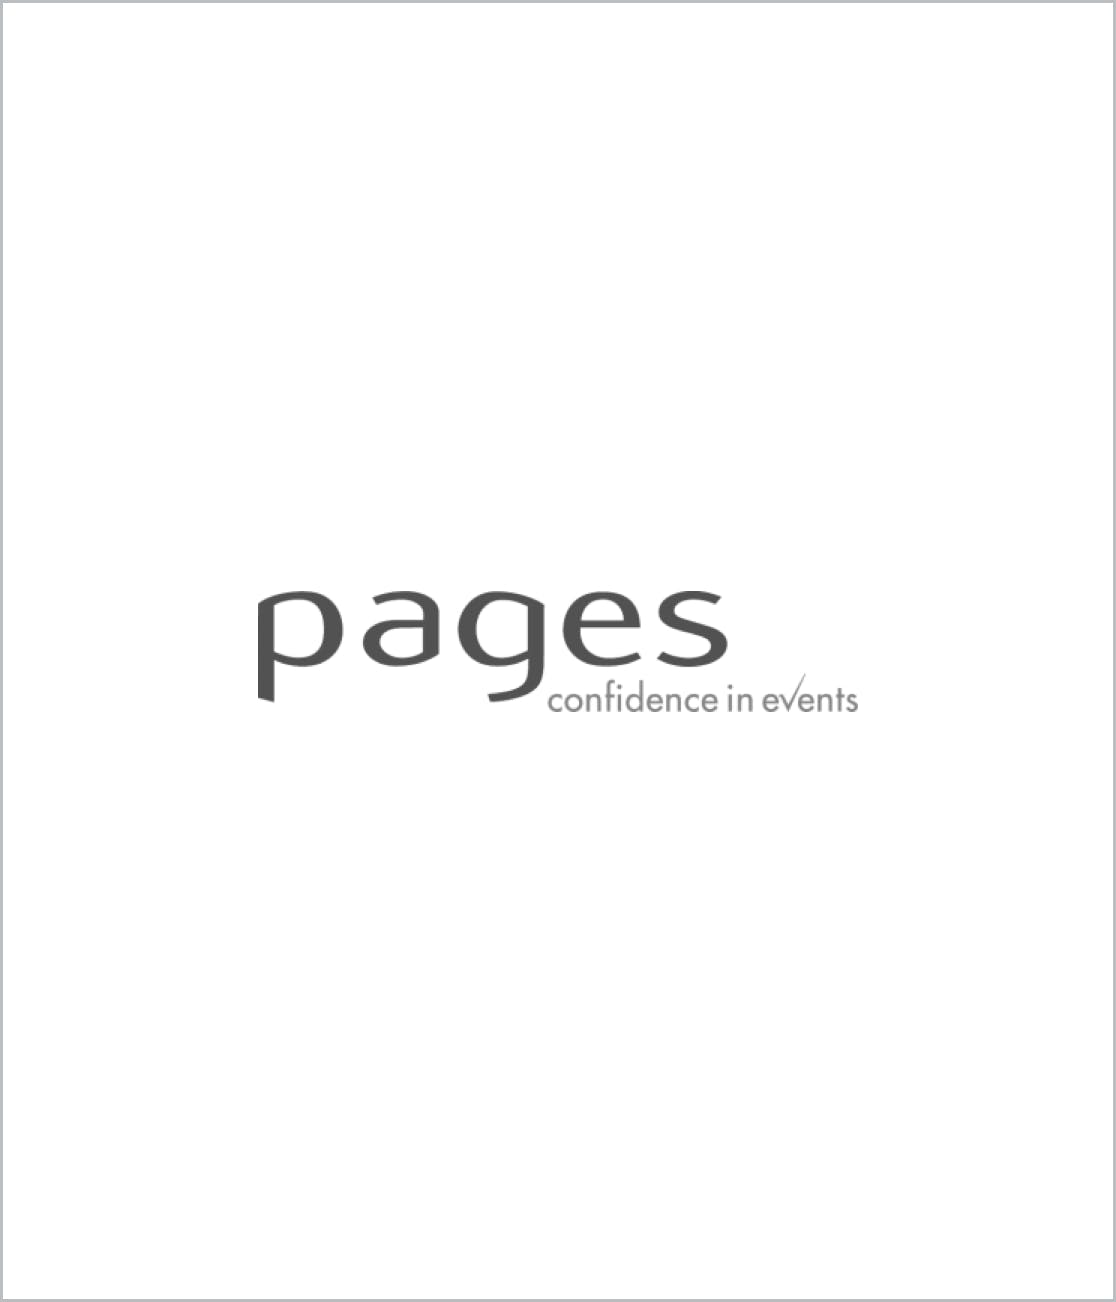 Pages Logo Supplier